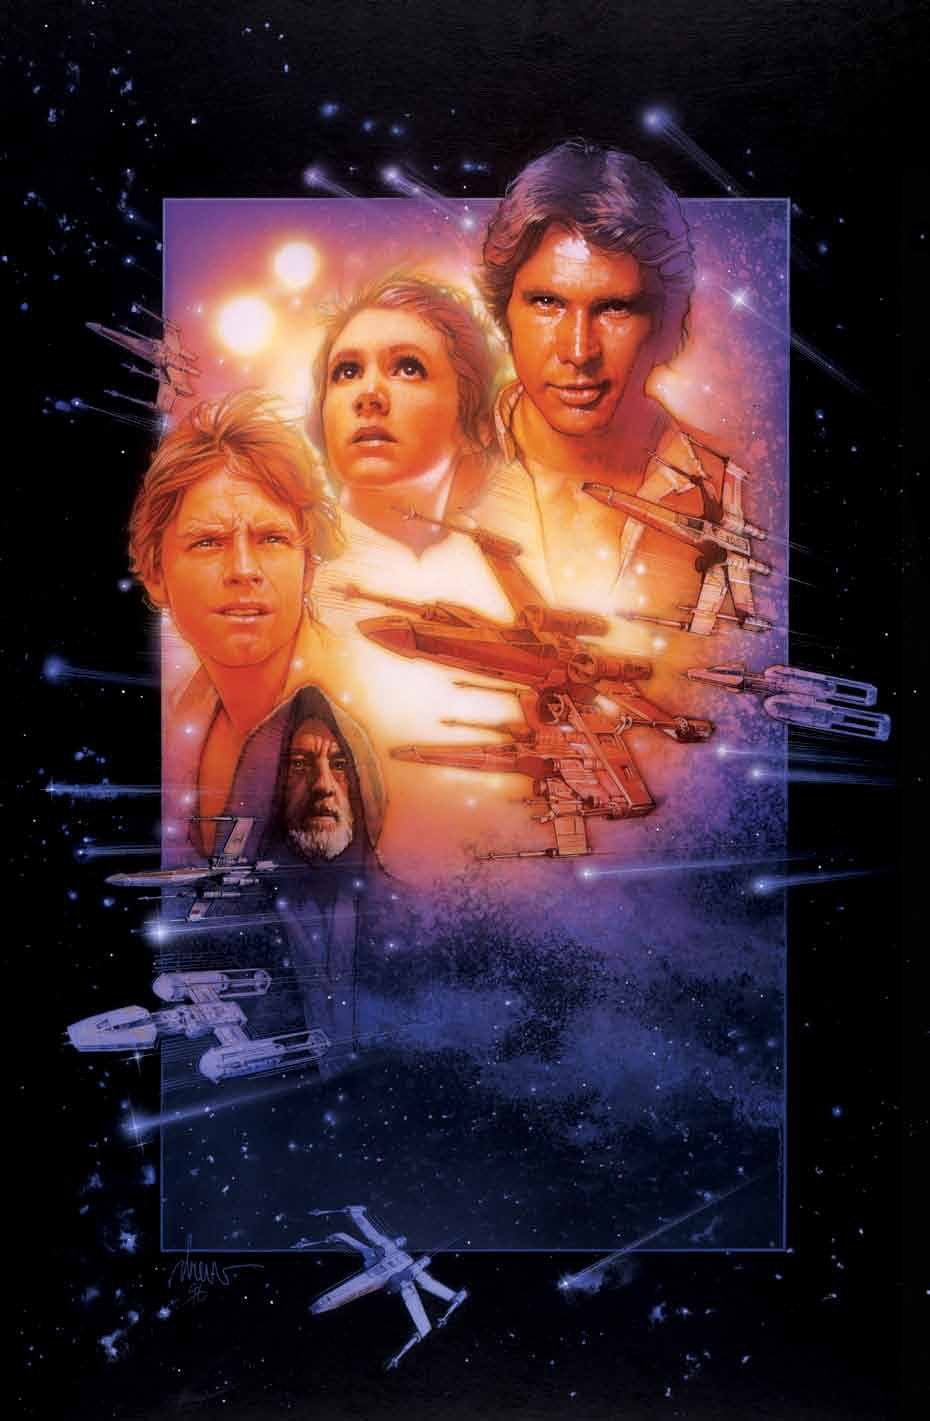 Star Wars Episode Iv A New Hope By Drew Struzan Star Wars Episode Iv Star Wars Episode 4 Star Wars Episodes